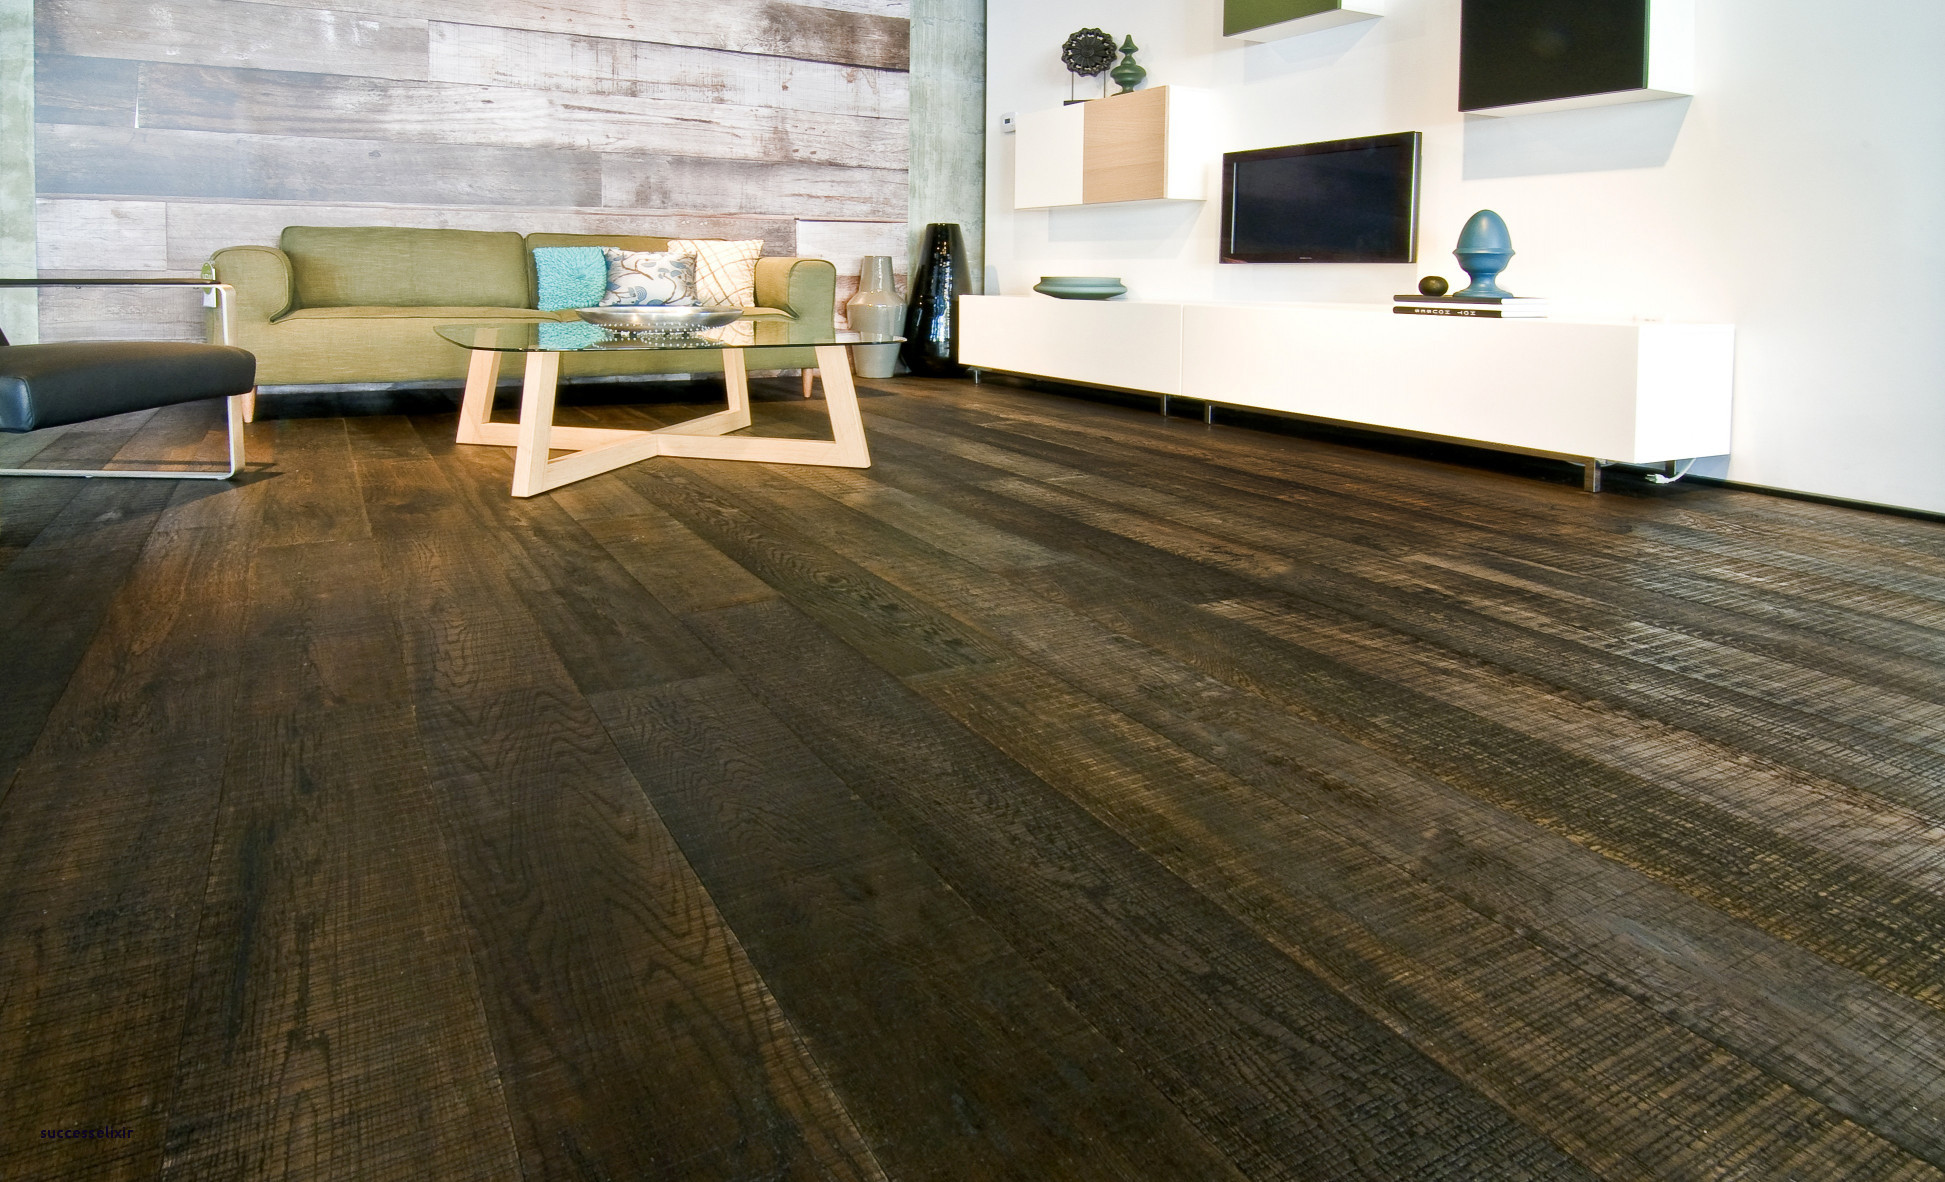 grey hardwood floors of 23 fancy unfinished wood flooring image within full size of bedroom engaging discount hardwood flooring 5 where to buy inspirational 0d grace place